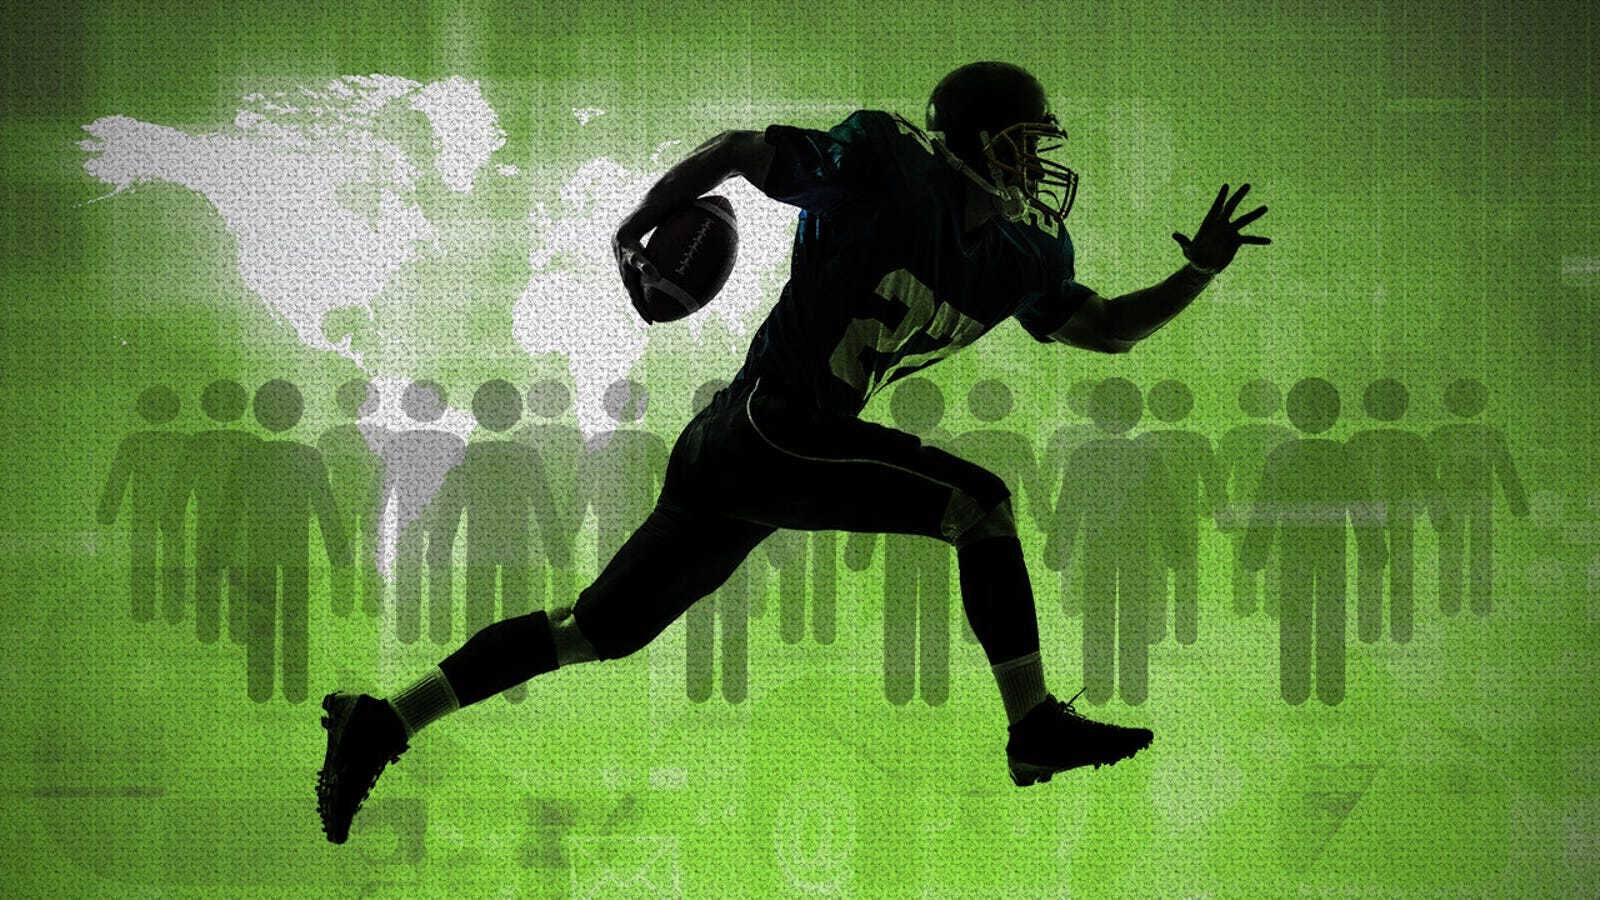 Use the Wisdom of Crowds to Draft the Best Fantasy Football Team